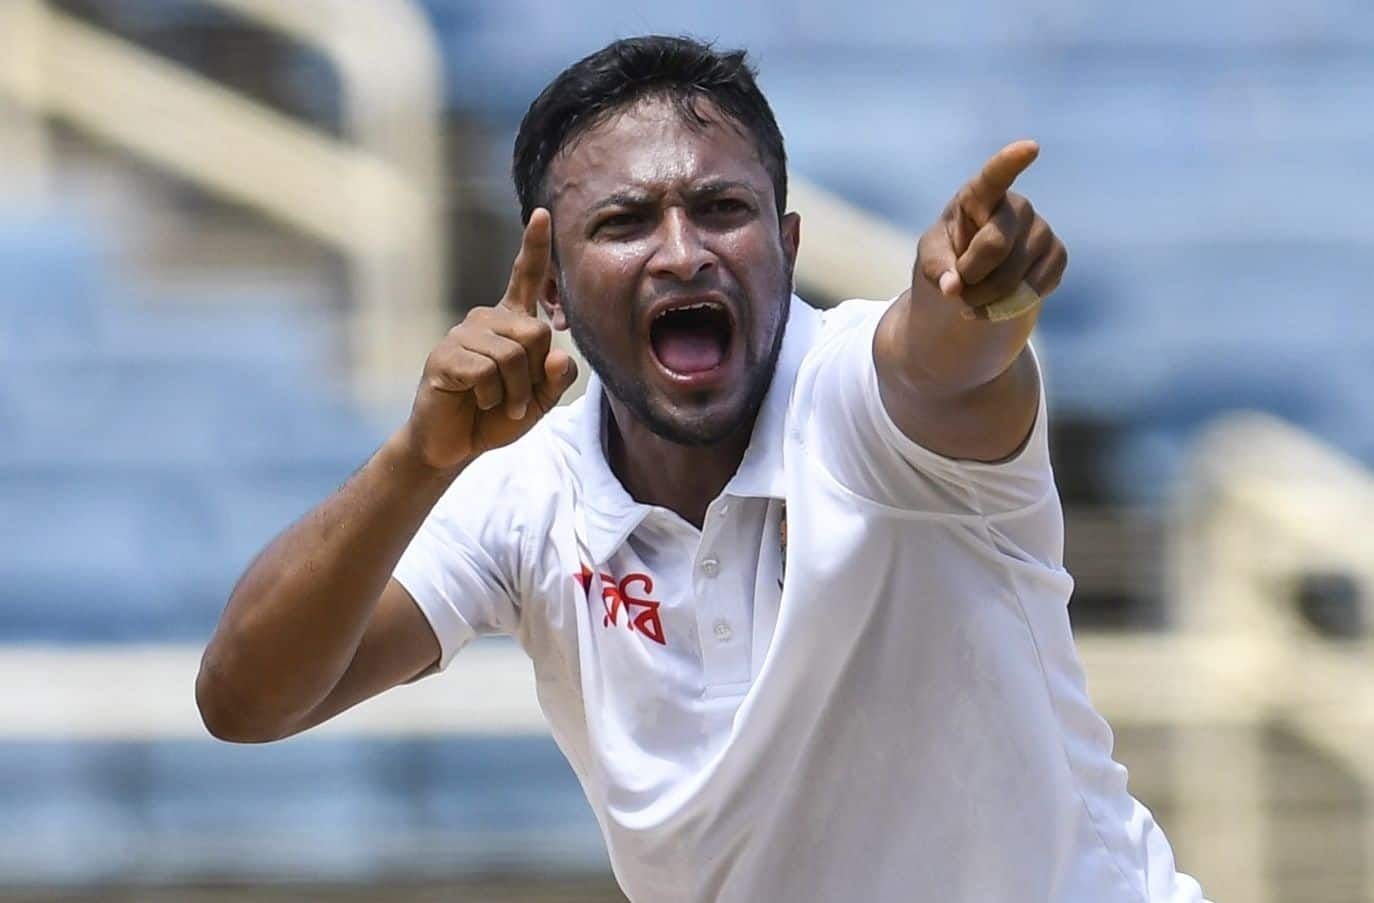 Shakib Al Hasan becomes first Bangladeshi bowler to take 200 Test wickets and other records